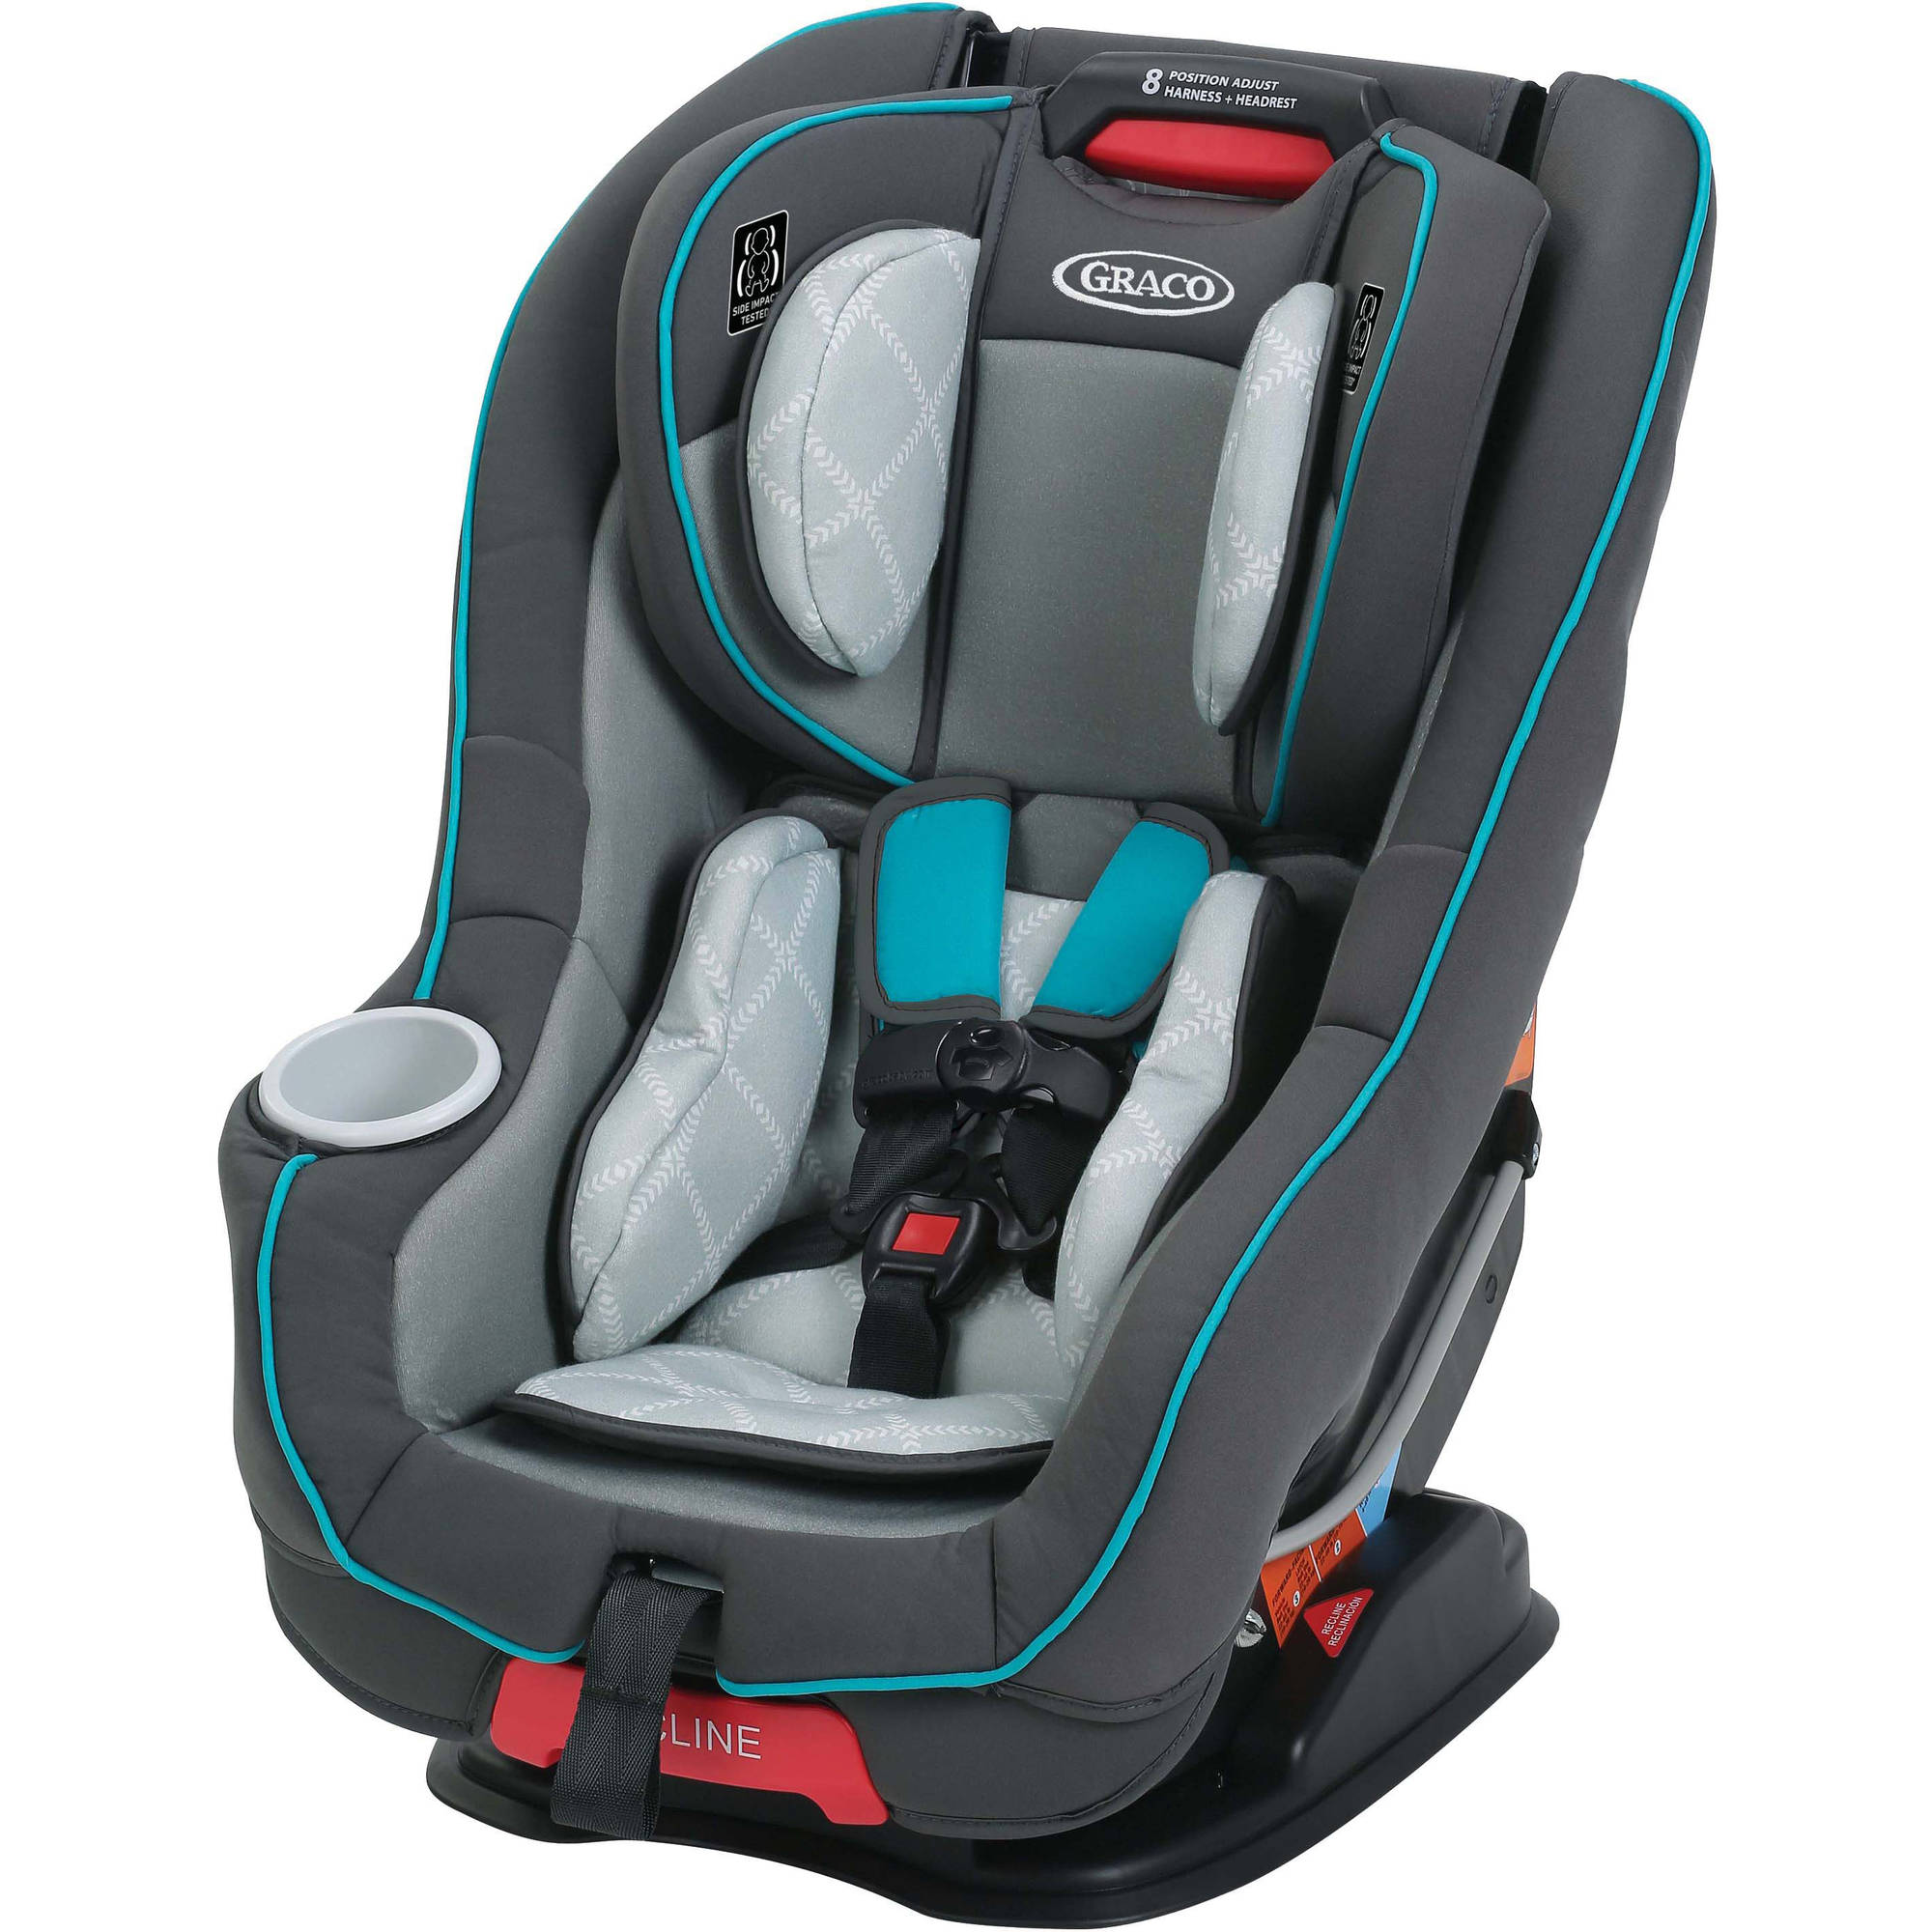 Graco Size4Me 65 Convertible Car Seat with RapidRemove Cover, Choose Your Pattern